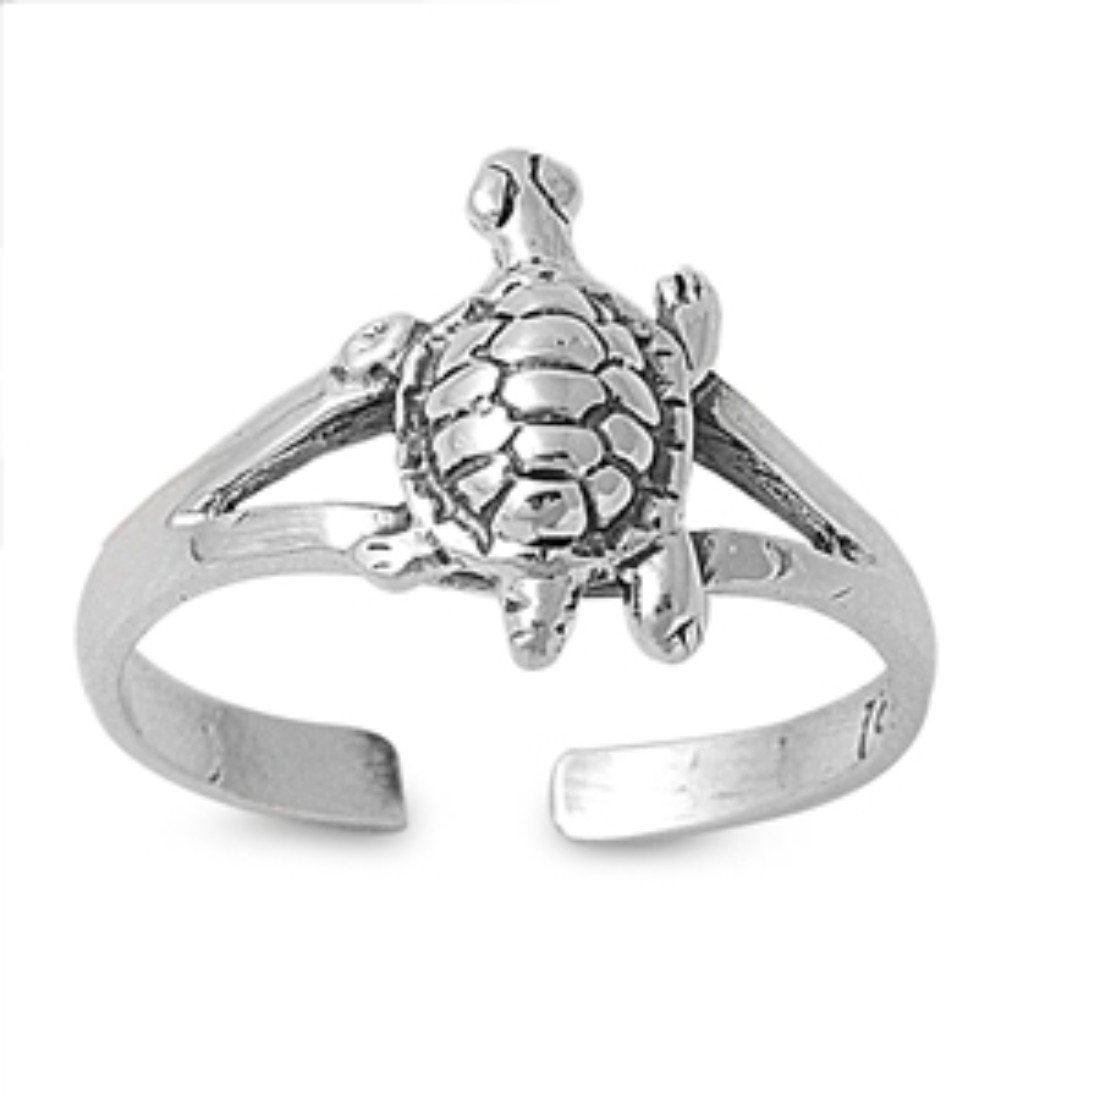 Silver Toe Ring Turtle Adjustable Band 925 Sterling Silver (10mm)